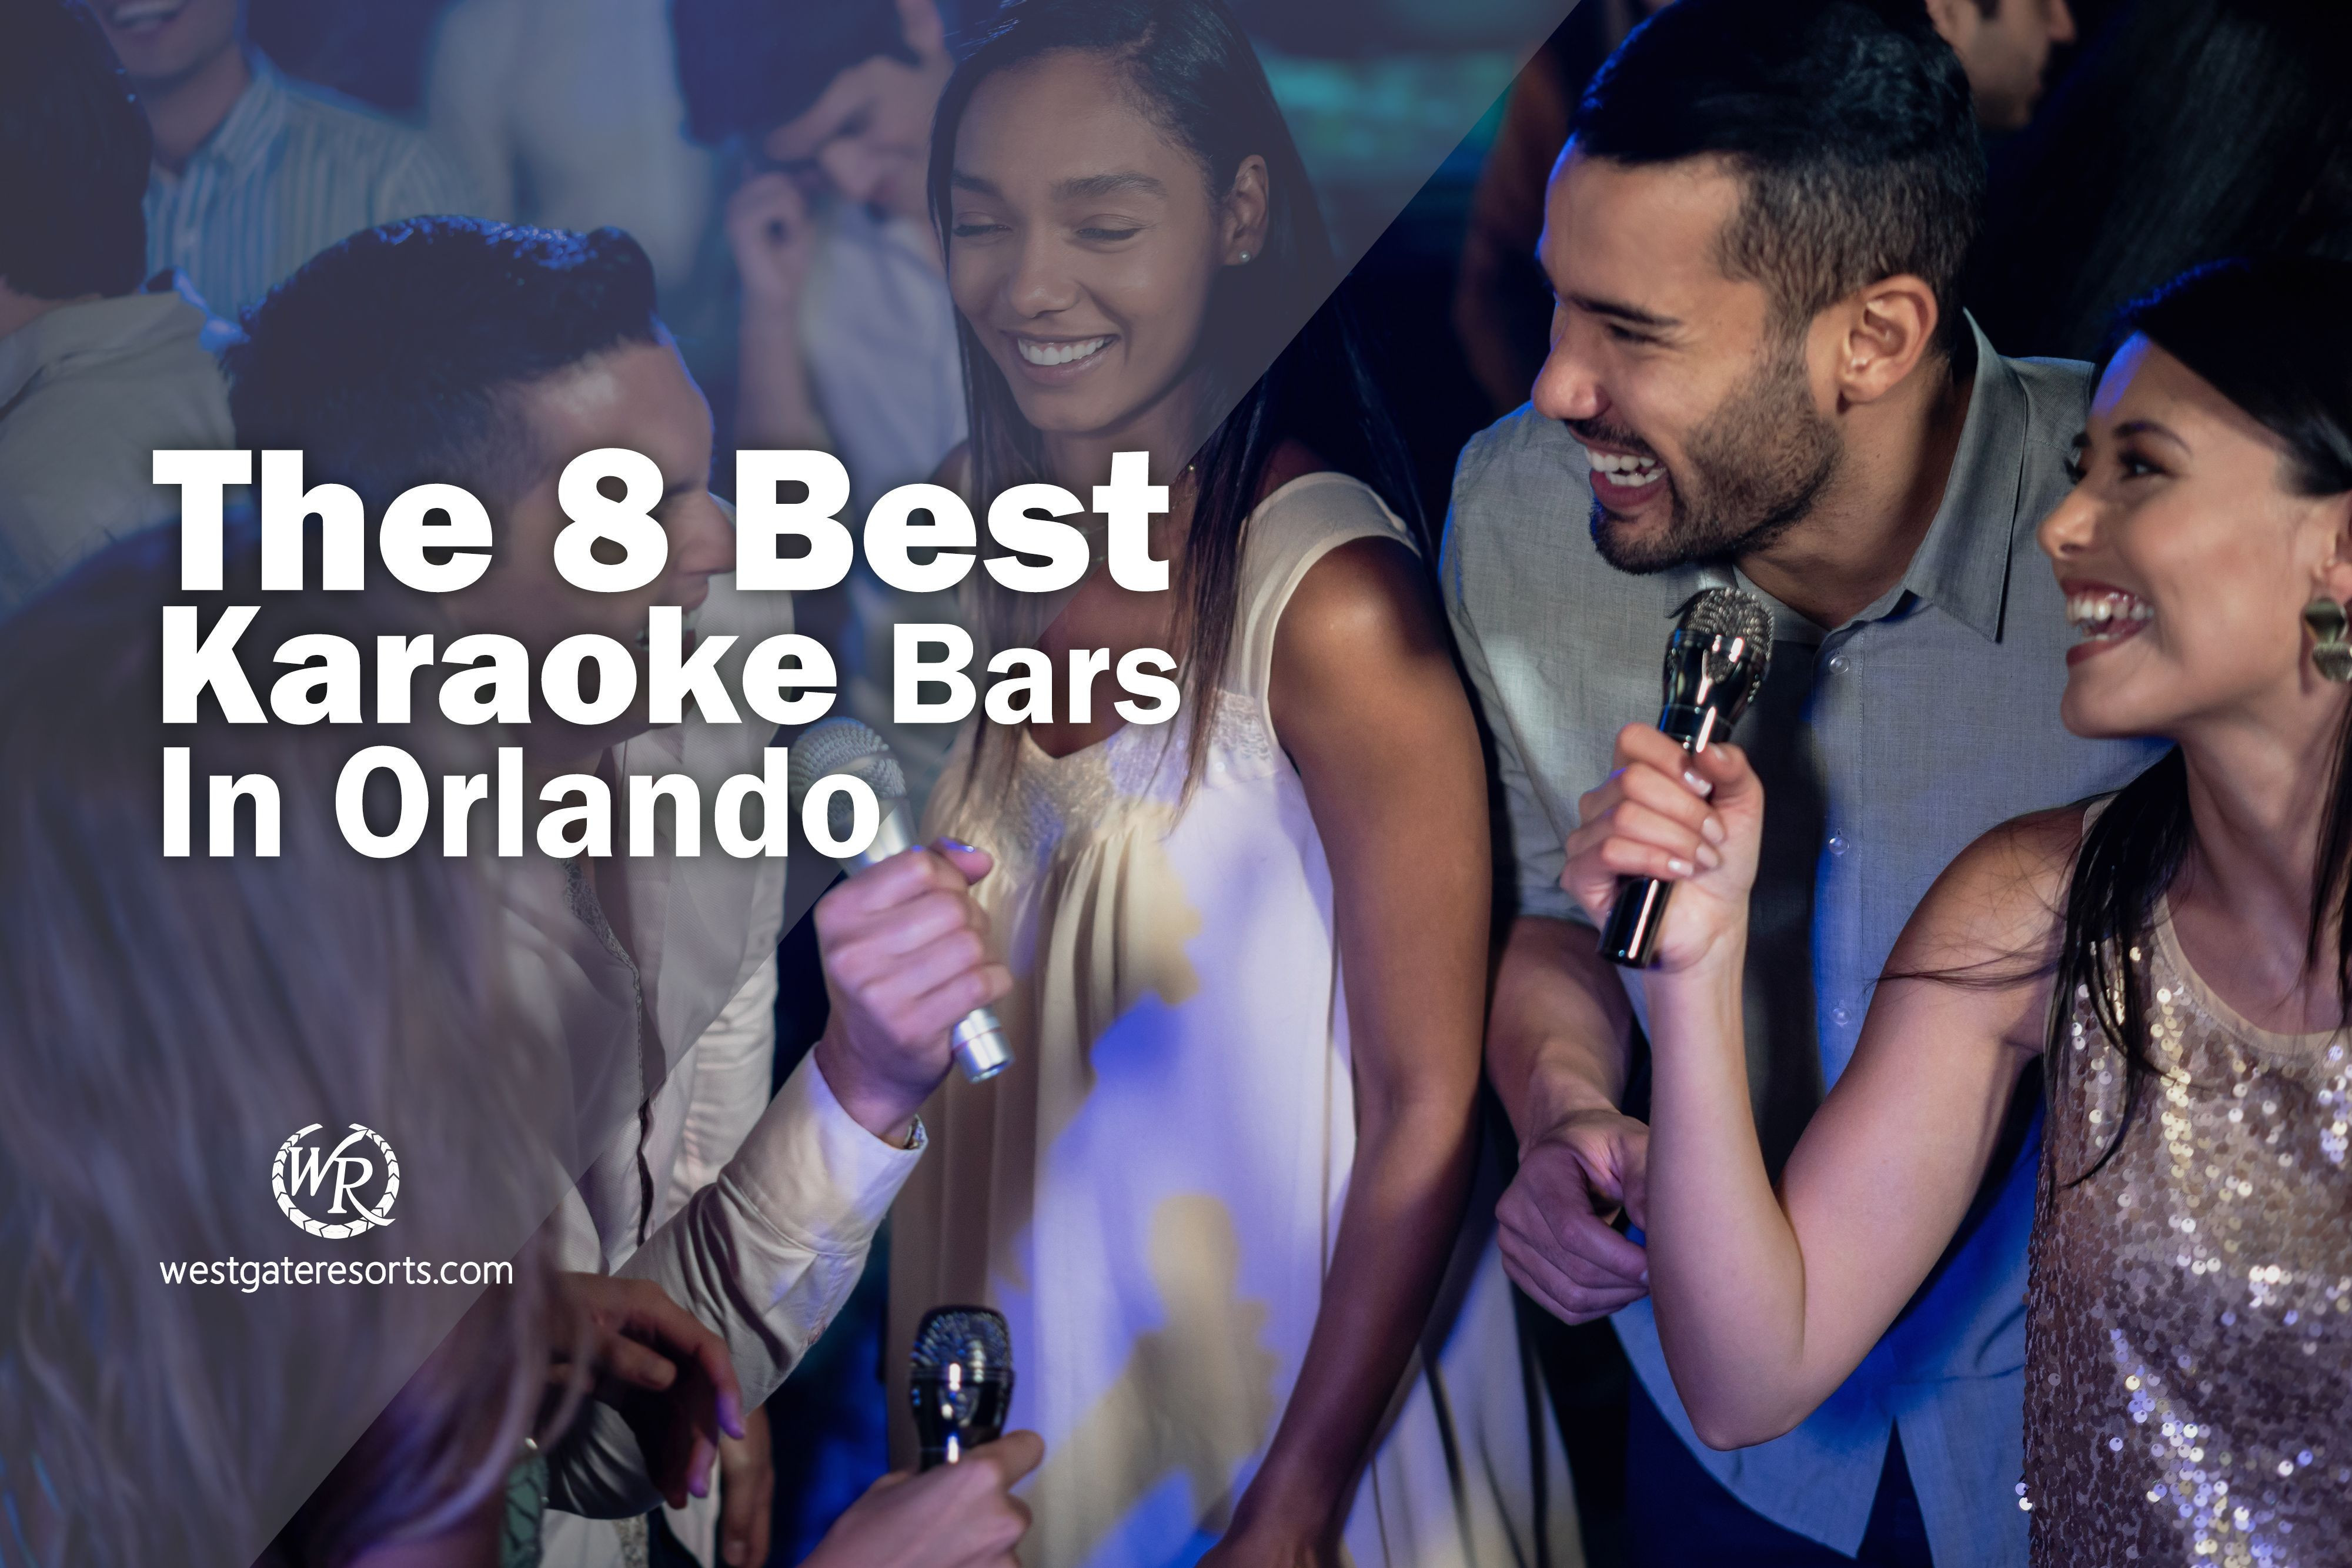 The 8 Best Karaoke Bars Orlando Has to Offer